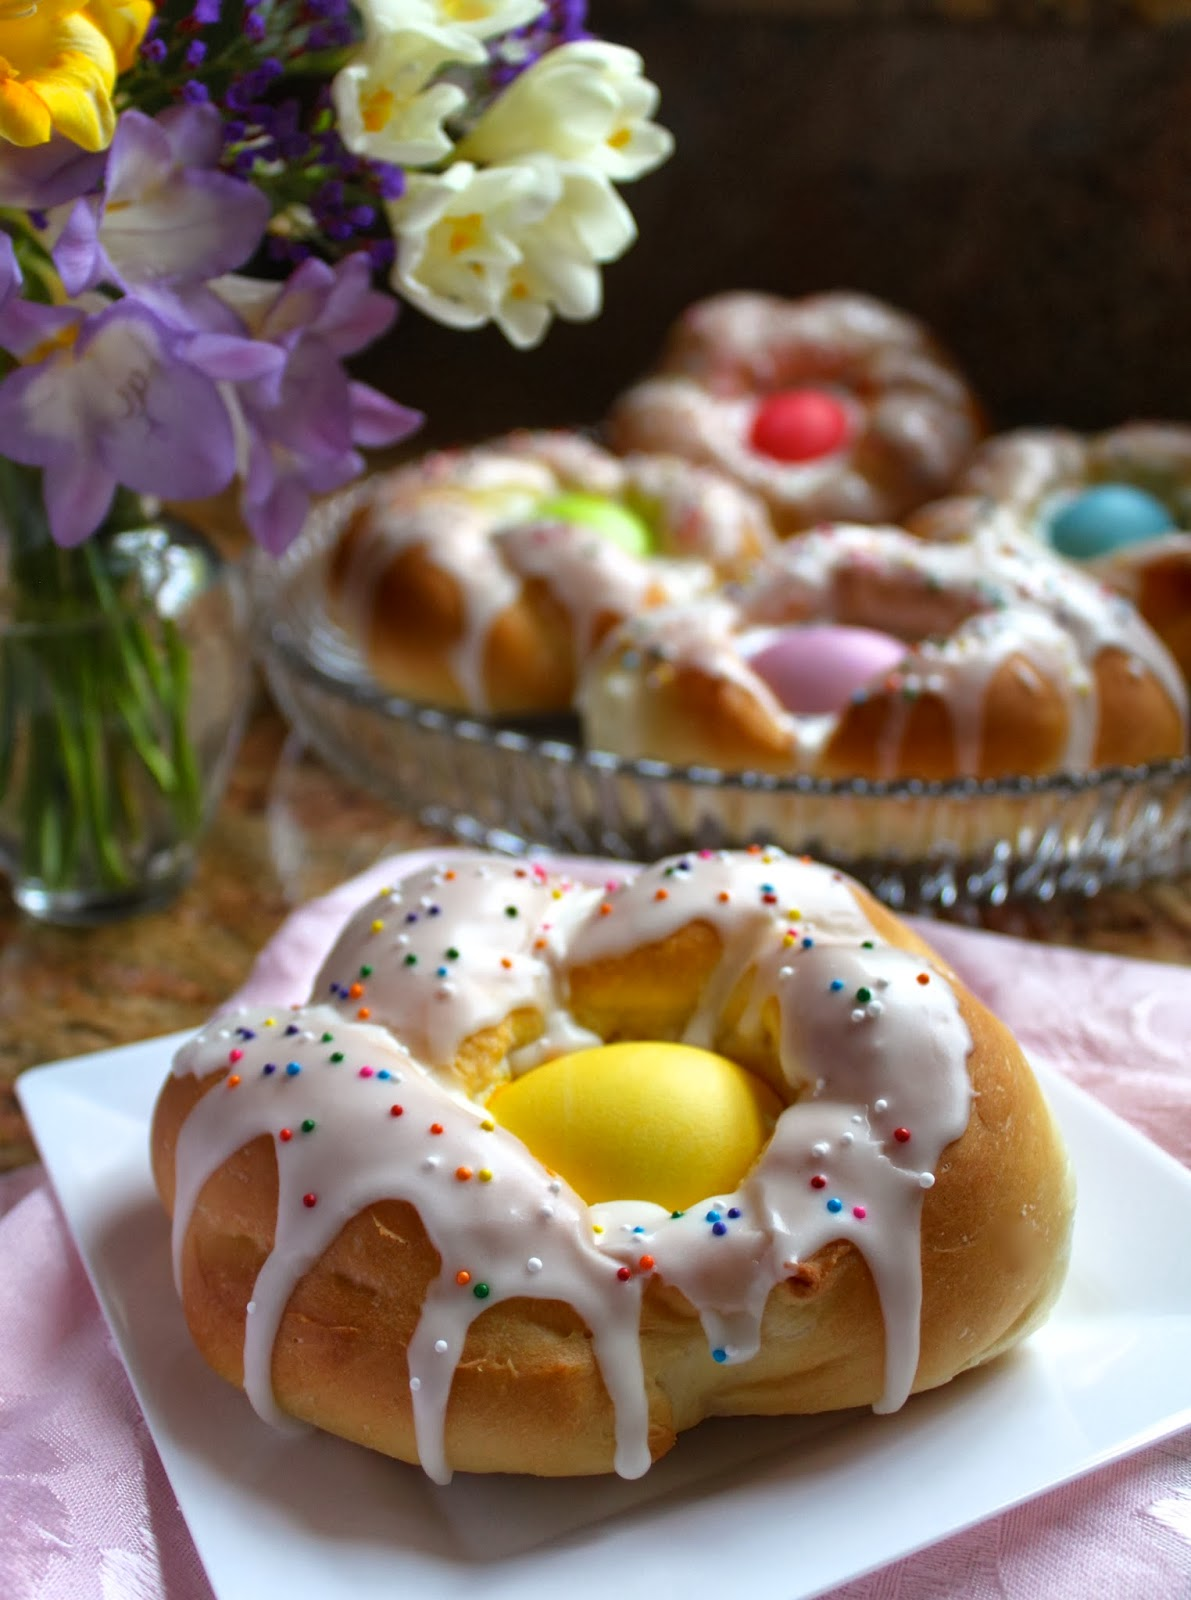 ... photos and you'll see, you can make these lovely Easter Bread Rings